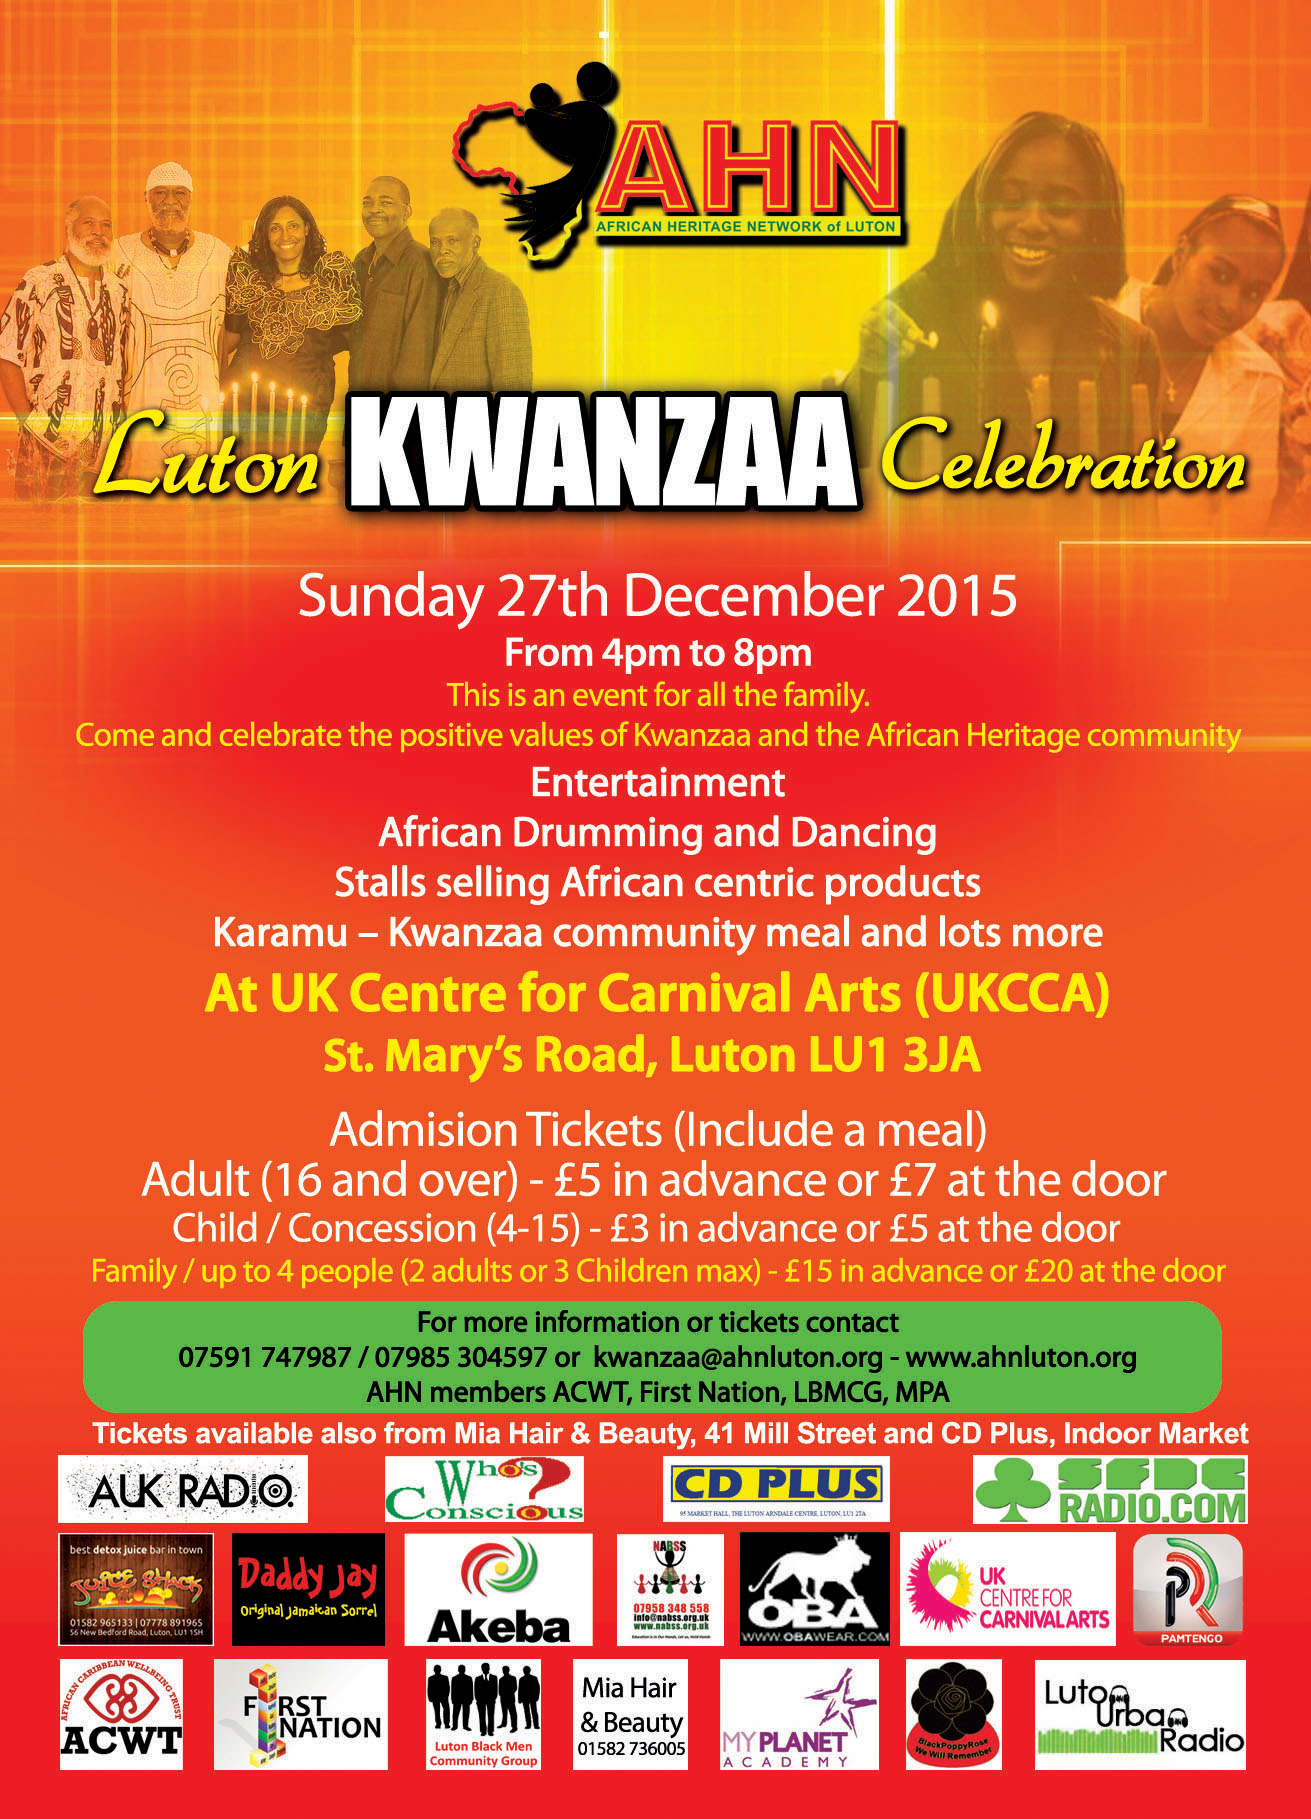 AHN Luton Kwanzaa 27th Dec 2015